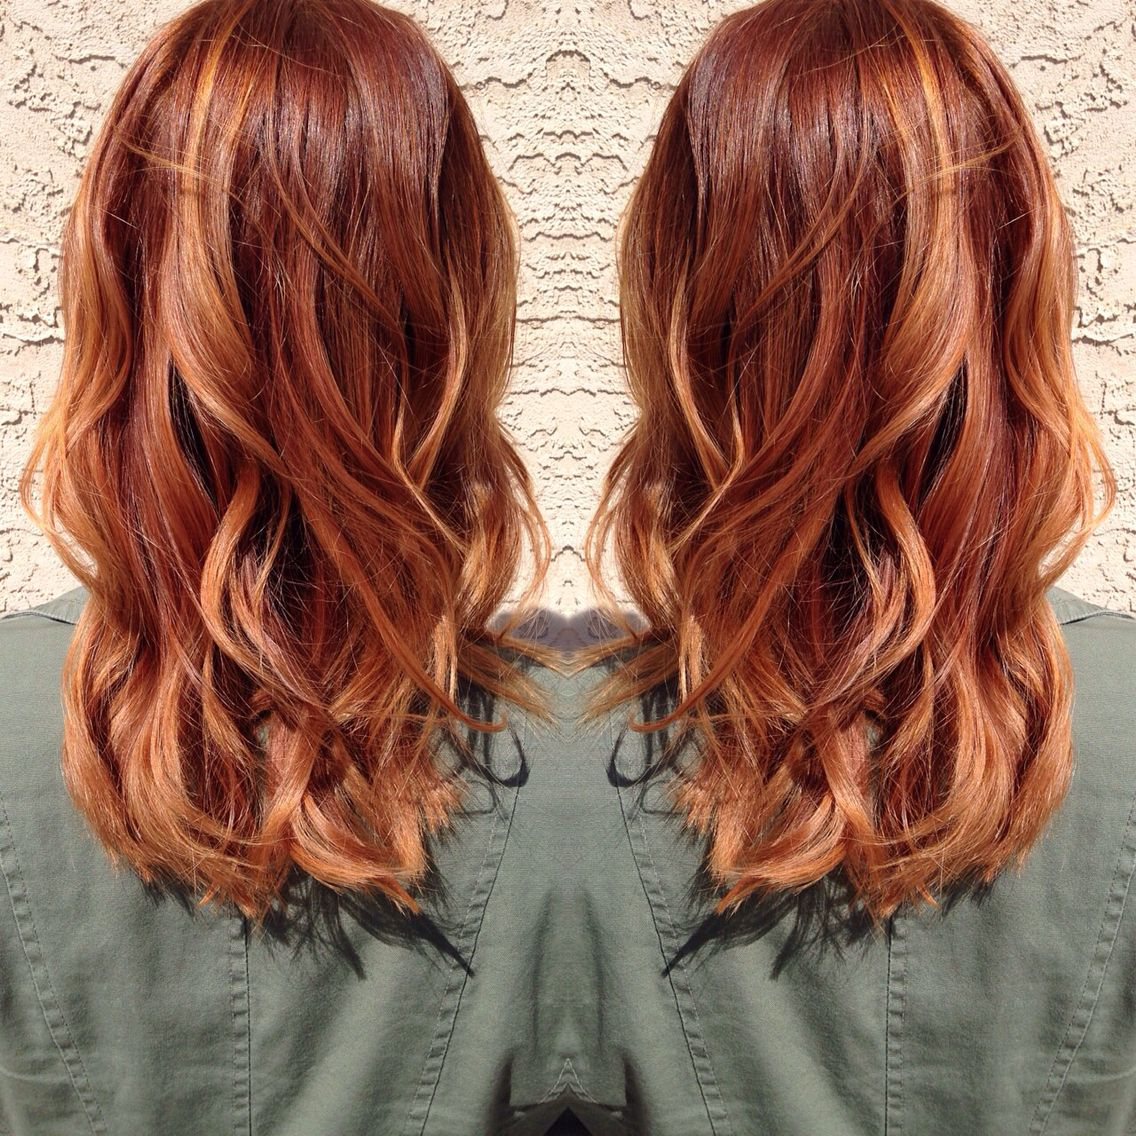 Medium copper blonde hair. #copperbalayage